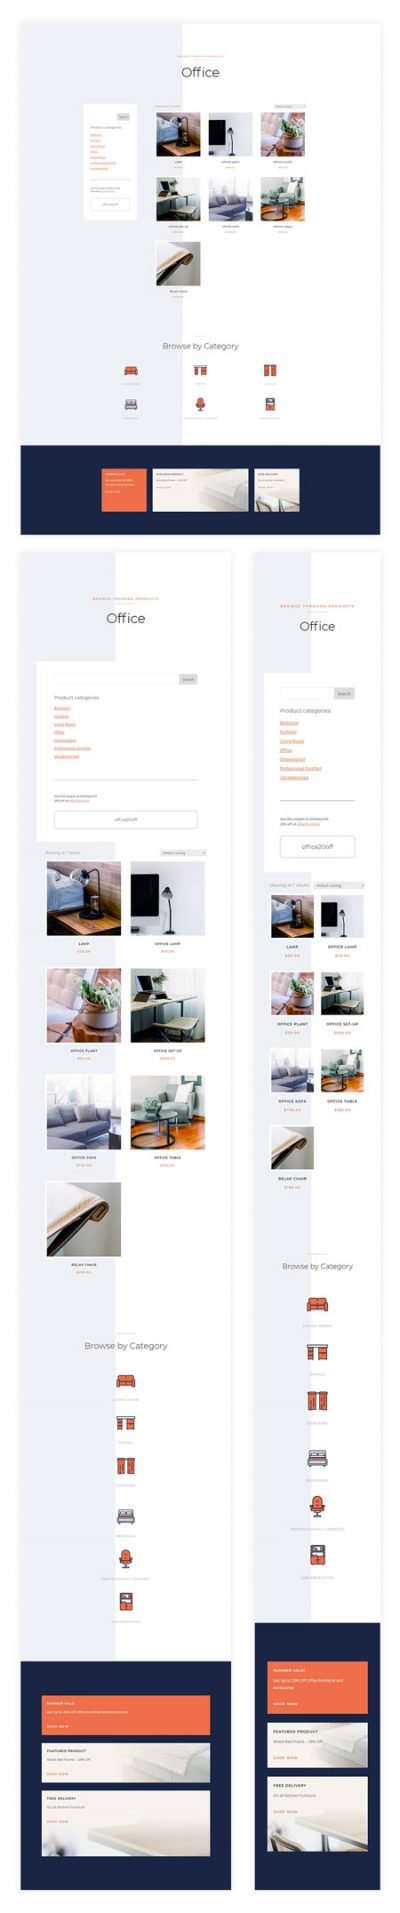 Furniture Store Product Category Page Template